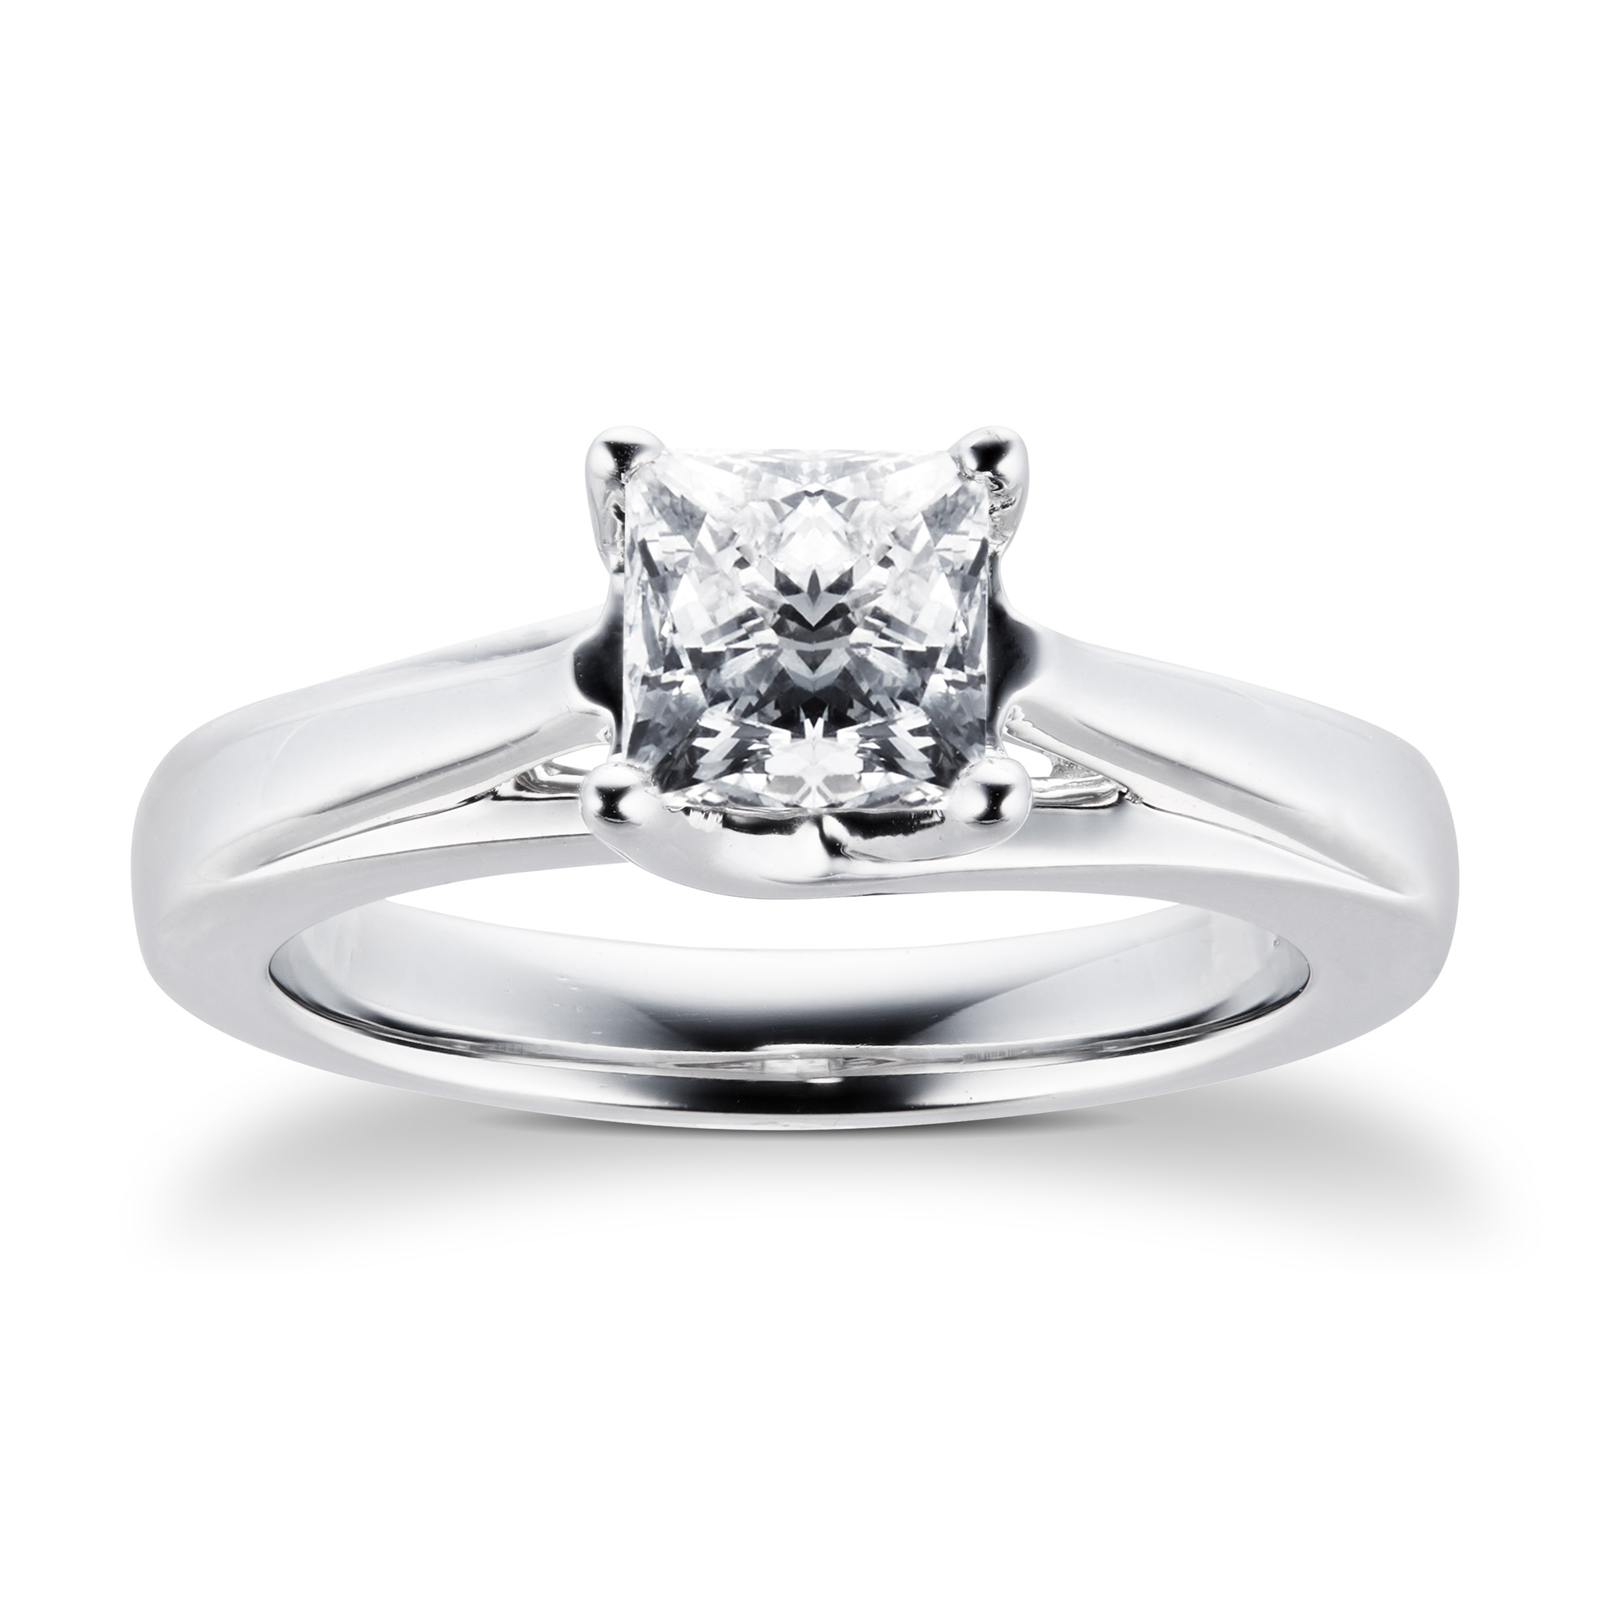 Platinum Princess Cut 1.00 Carat 88 Facet Diamond Ring